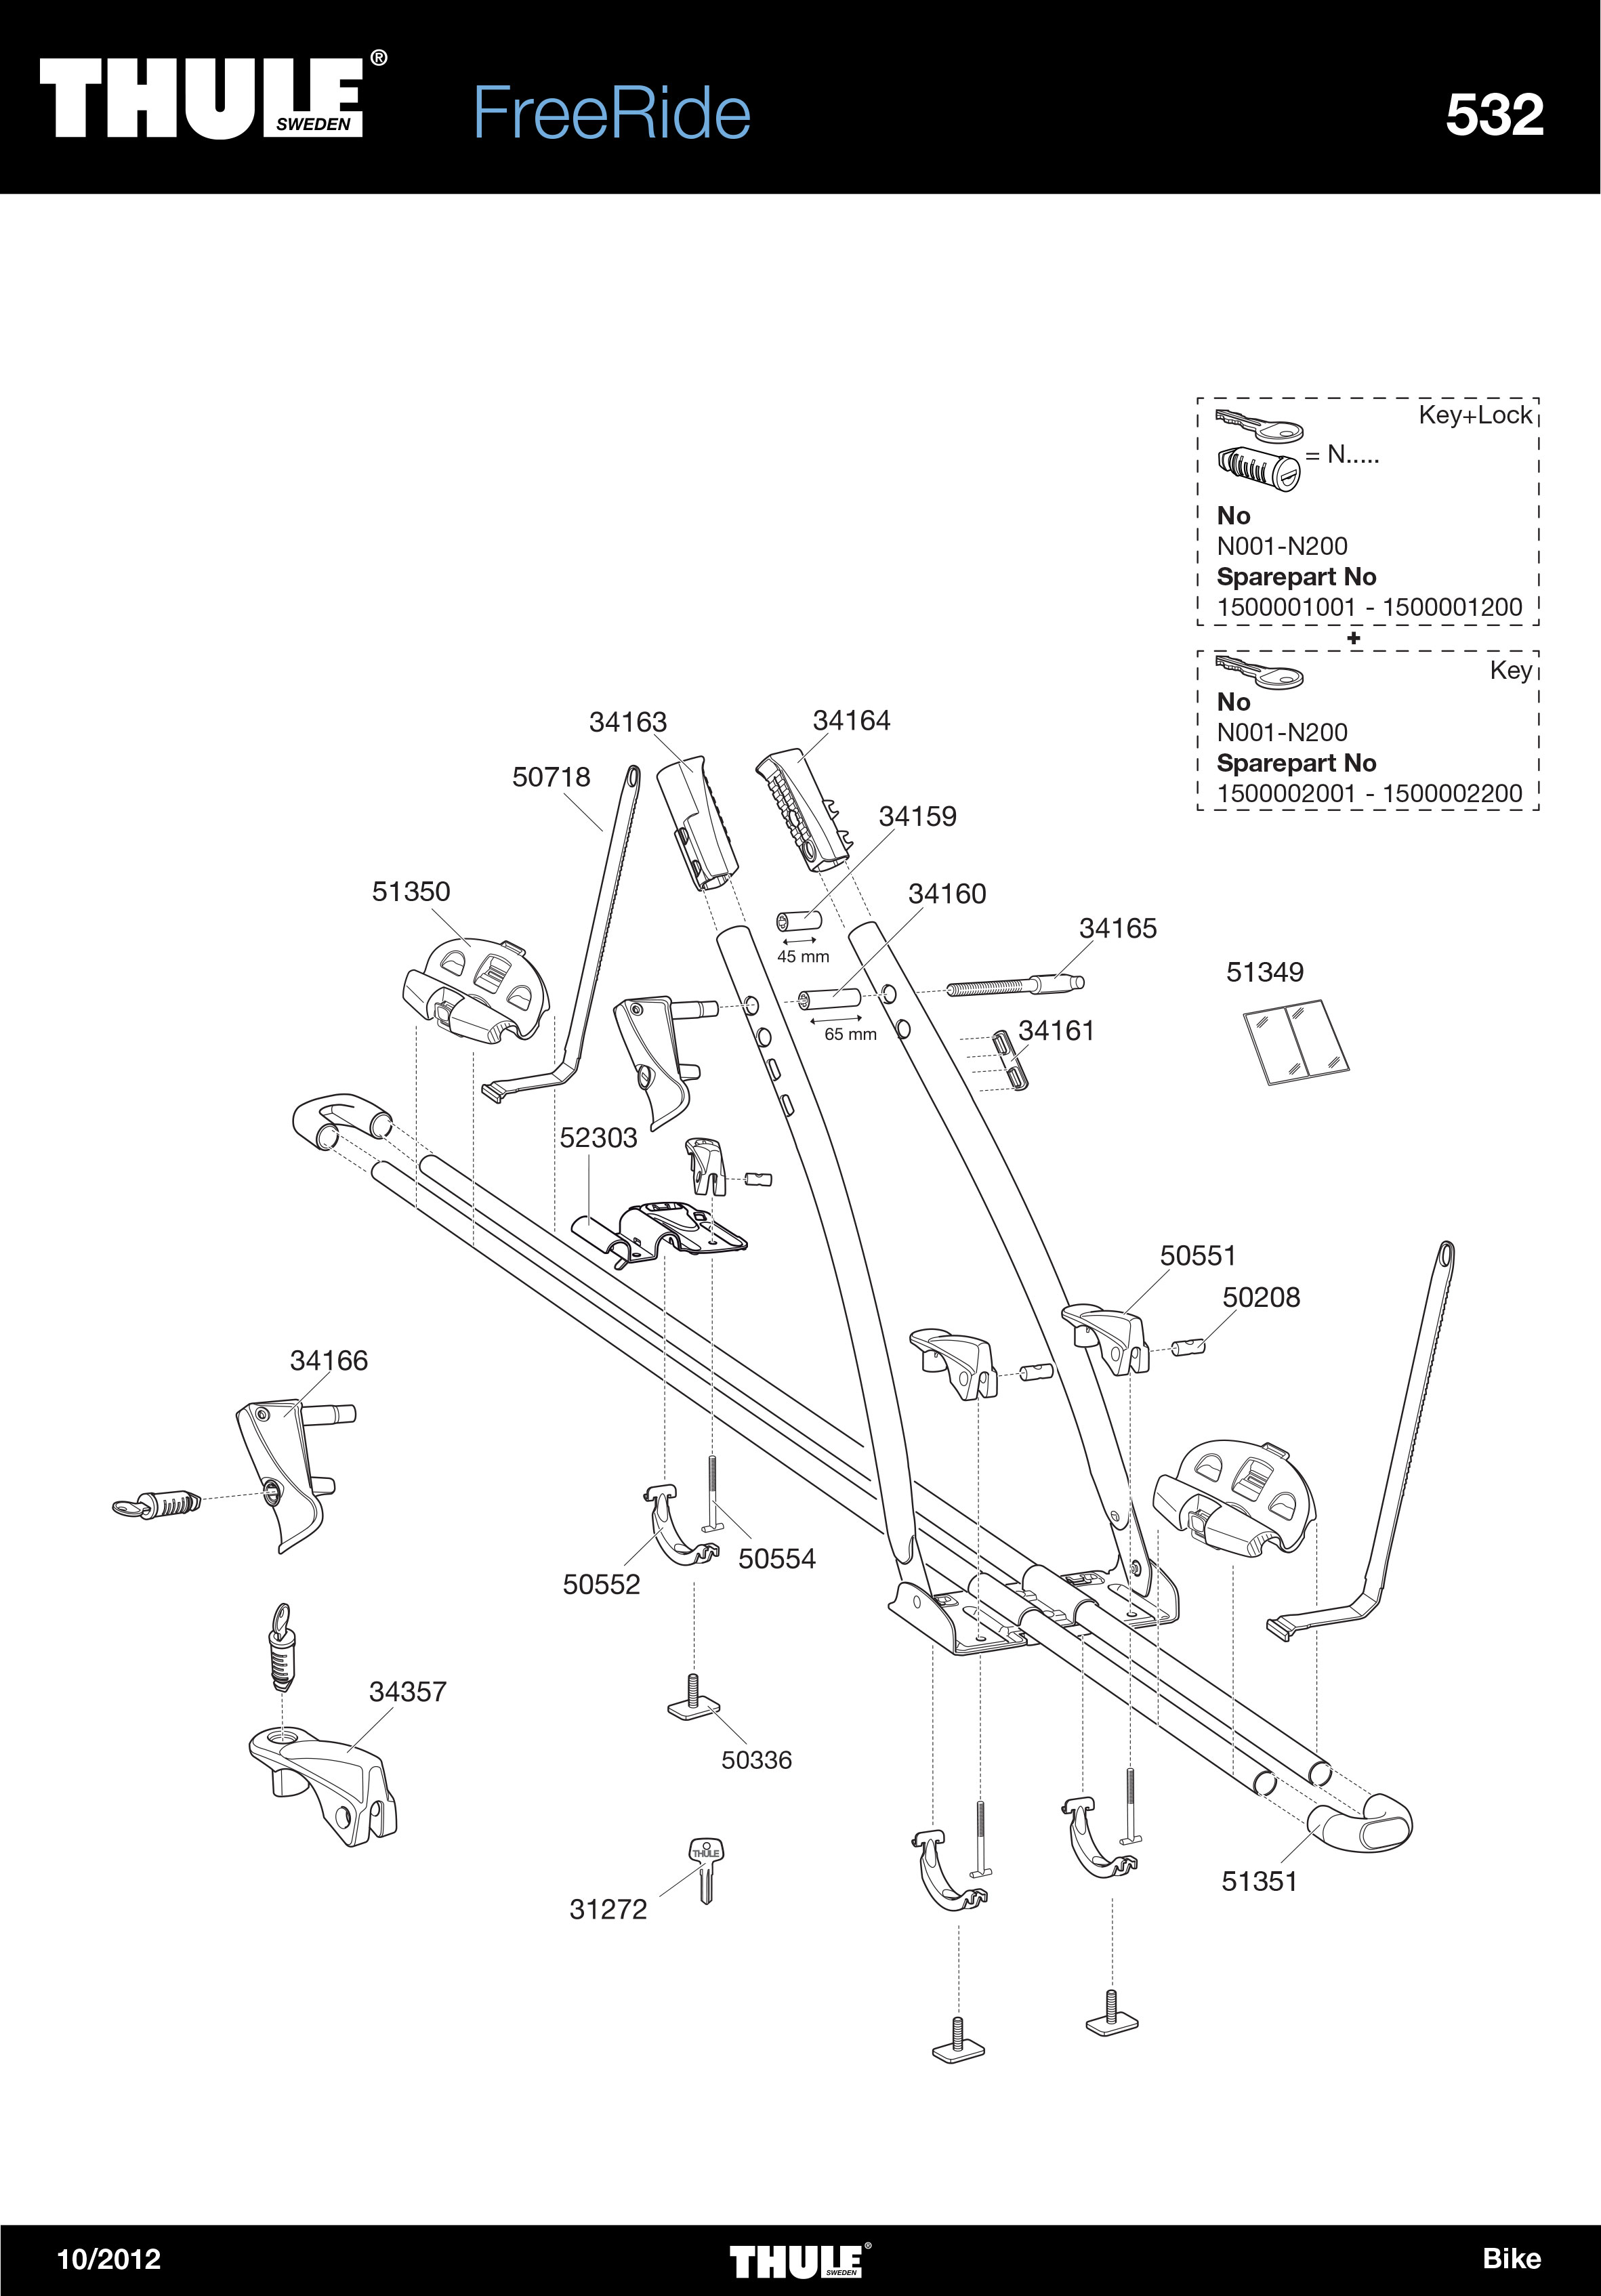 Thule Frame Support 34159 tbv FreeRide 532